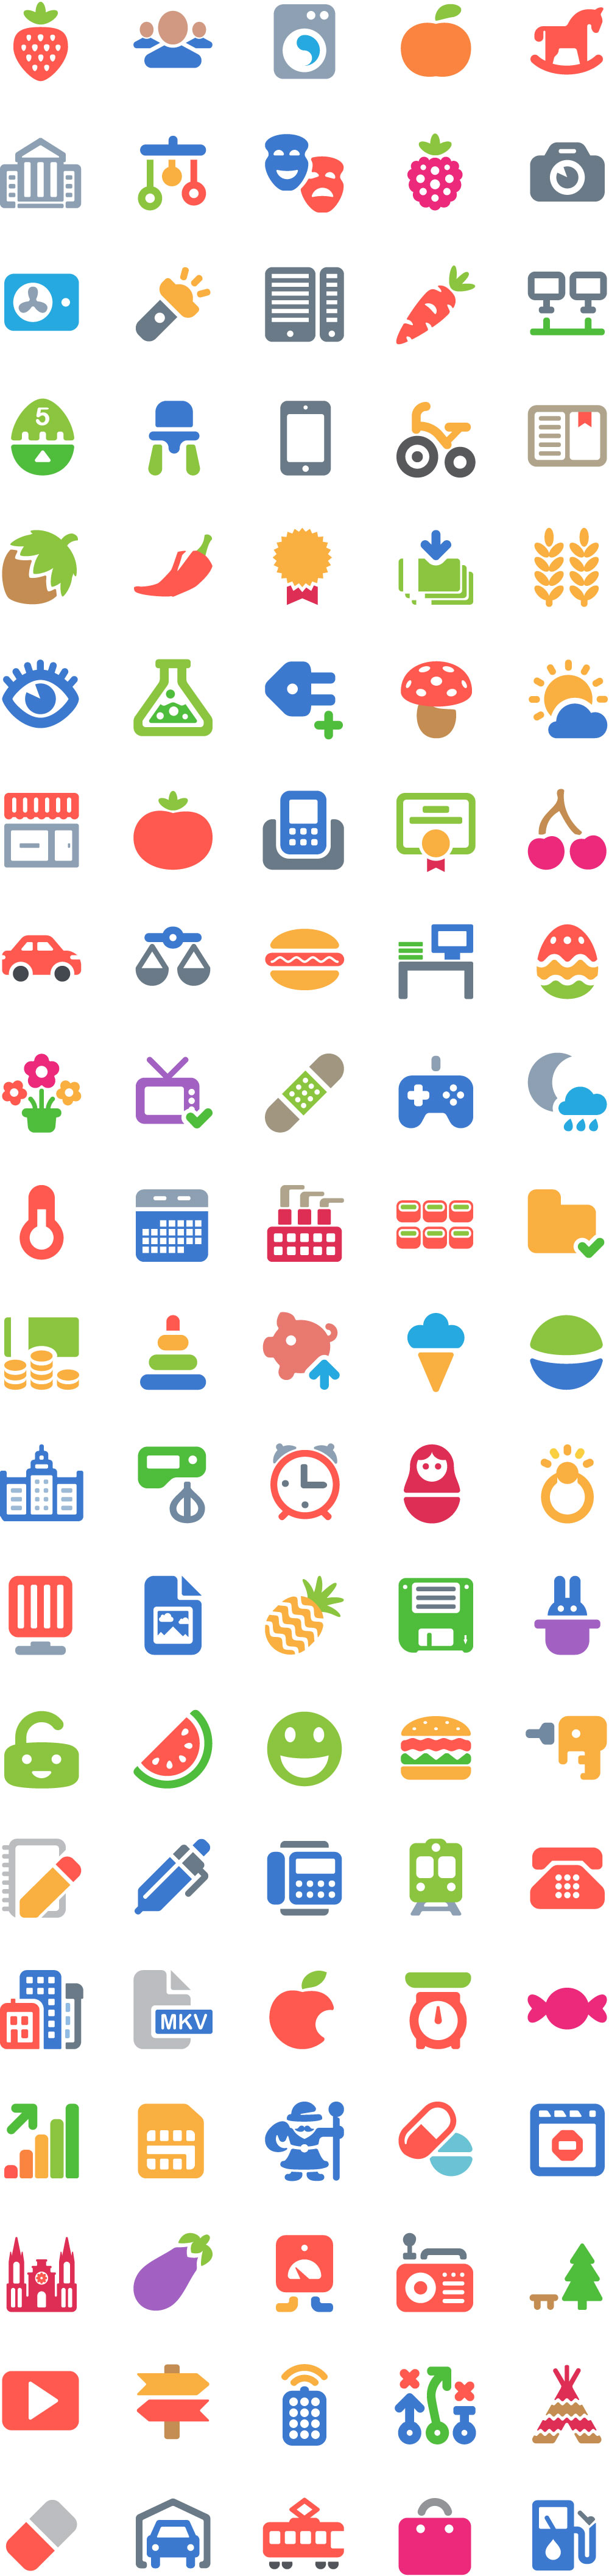 100-free-color-icons